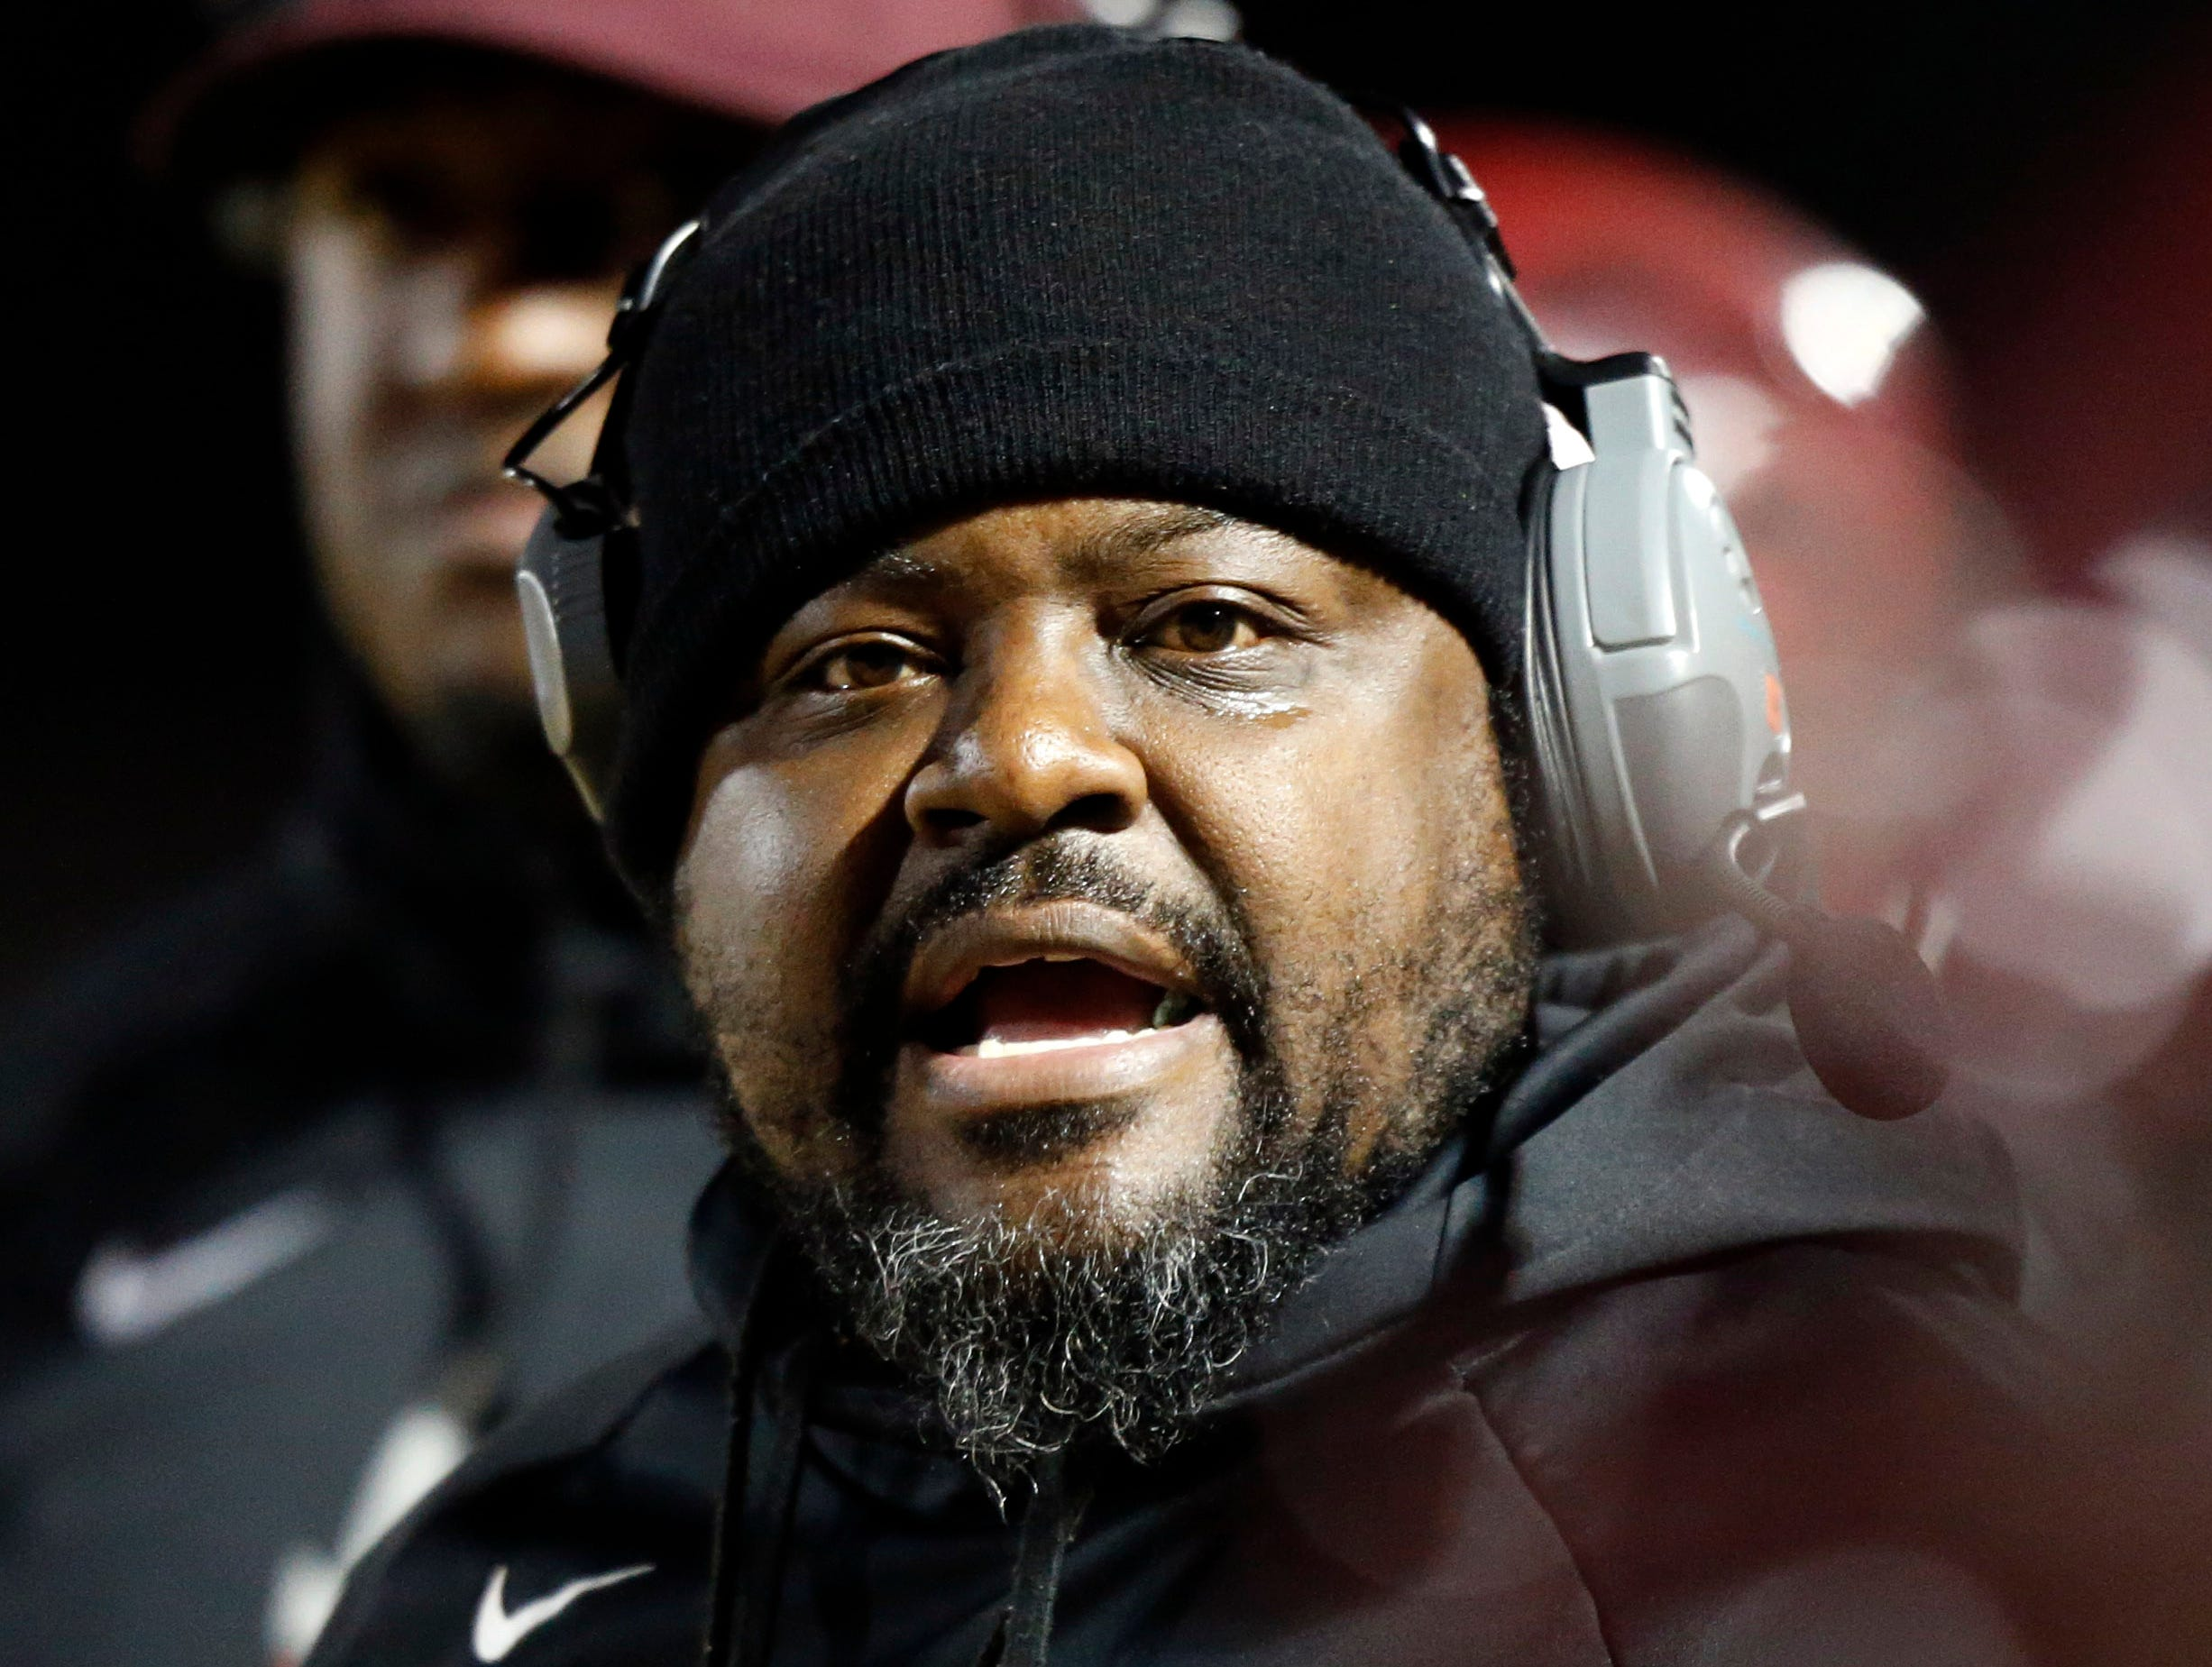 Maplewood head coach Arcentae Broome yells to player during their game against Greeneville Friday, Nov. 23, 2018, in Nashville, TN.